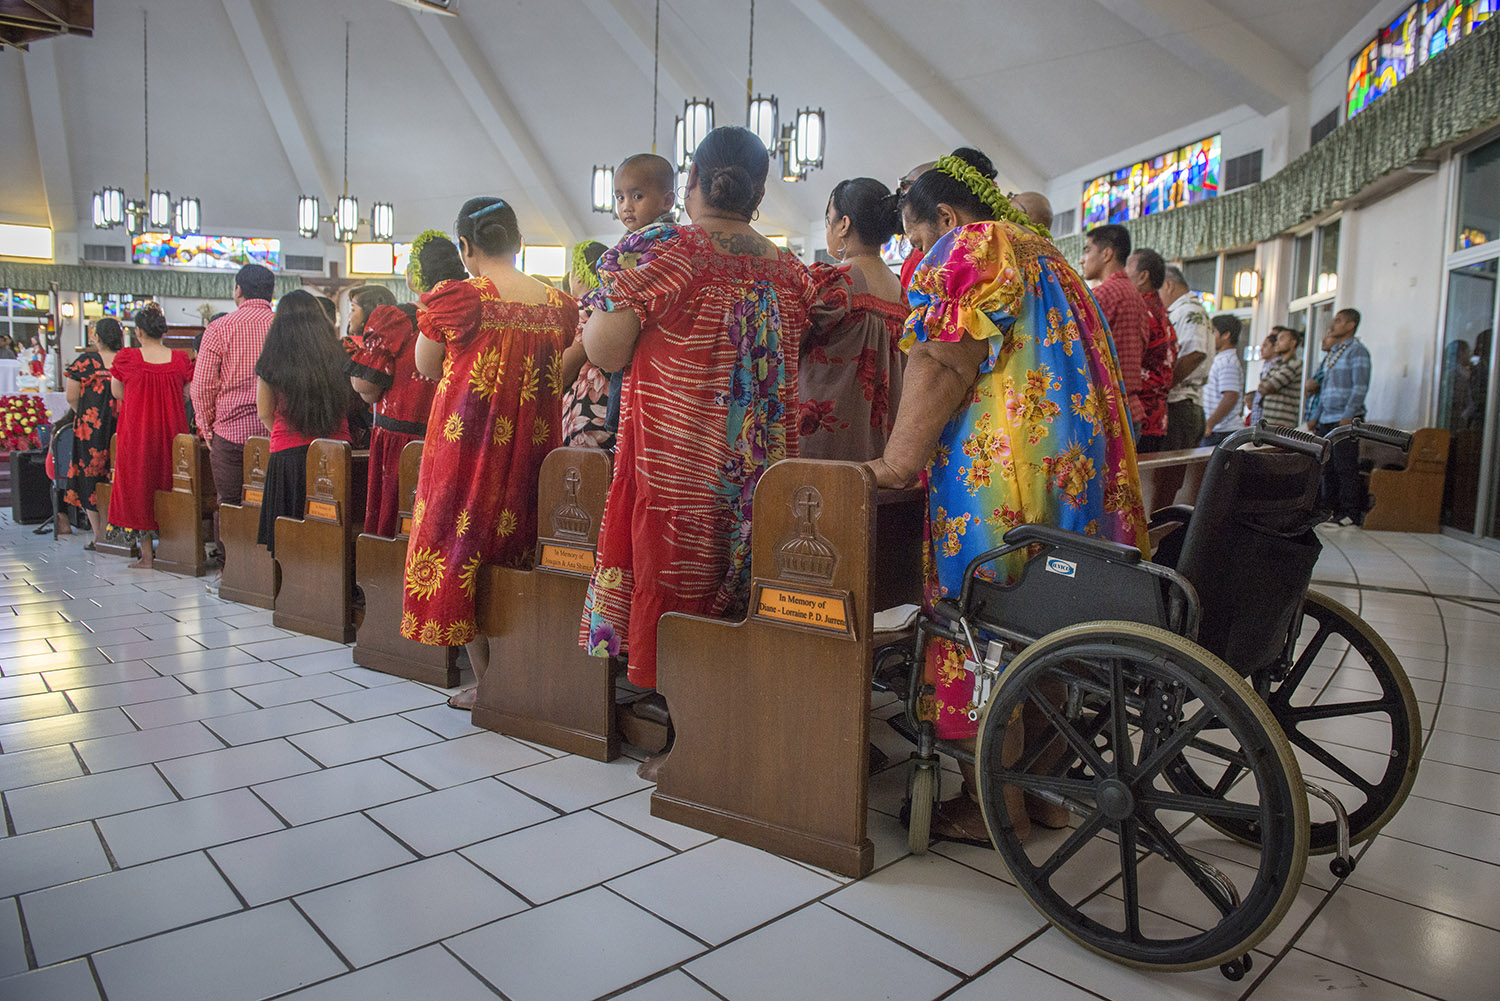 <p>It&#8217;s estimated that as many as 20,000 Micronesians now call Guam home. Some attend services at the Parish of Santa Barbara in Dededo.</p>